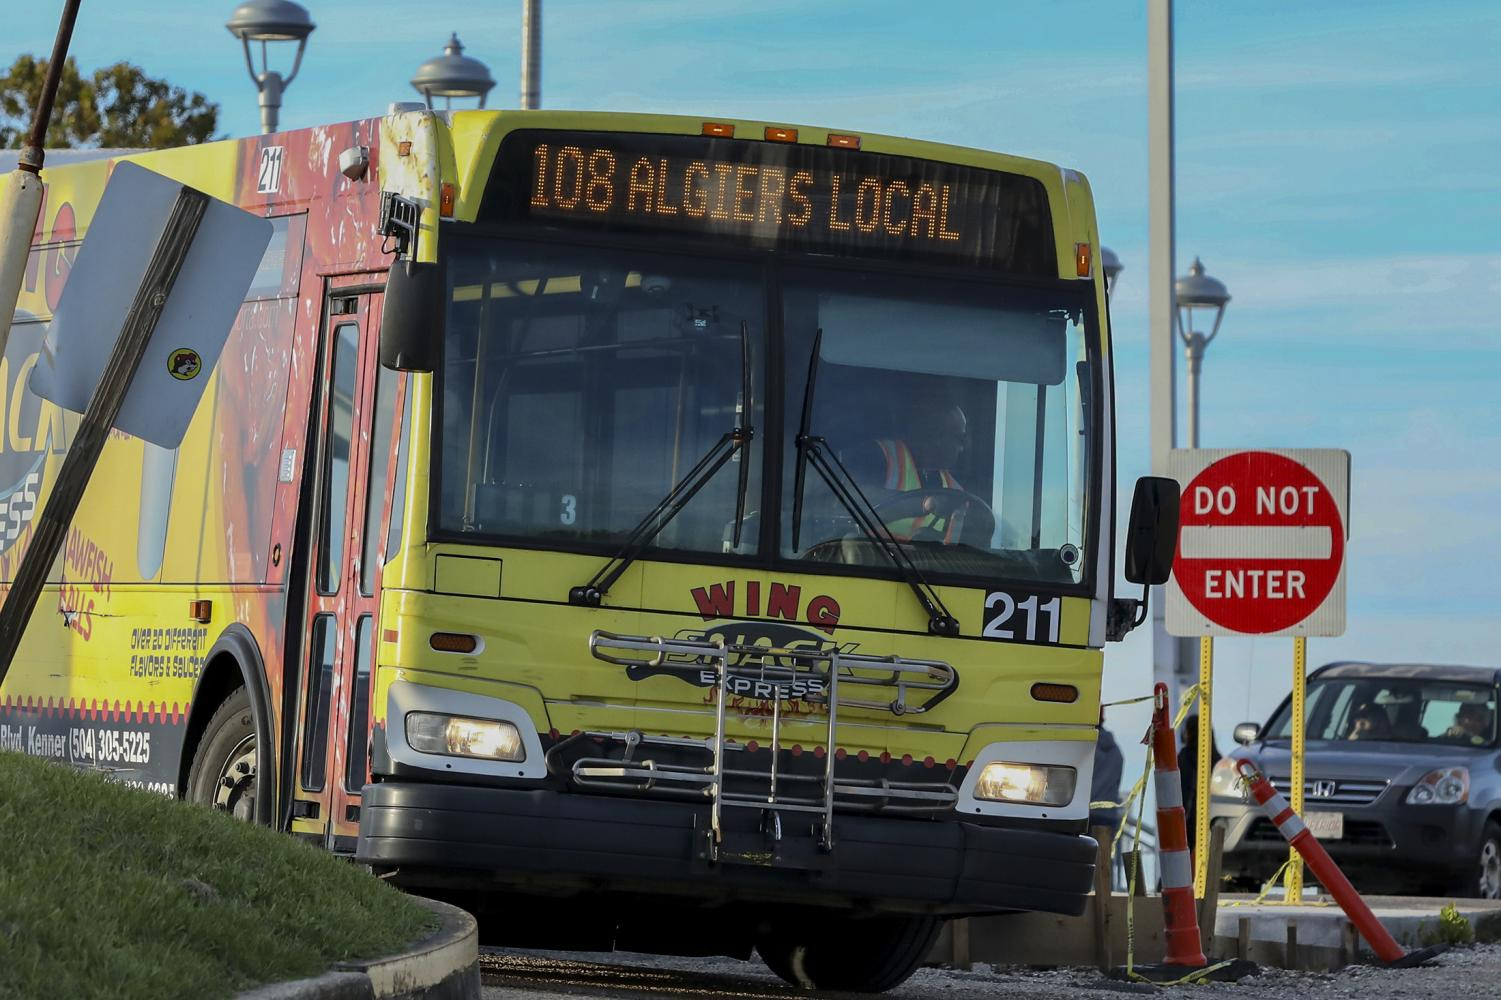 An RTA bus waits on passengers to board at Algiers Point. With the ferry out of service, more people have been forced to take the bus recently. Photo credit: Andres Fuentes